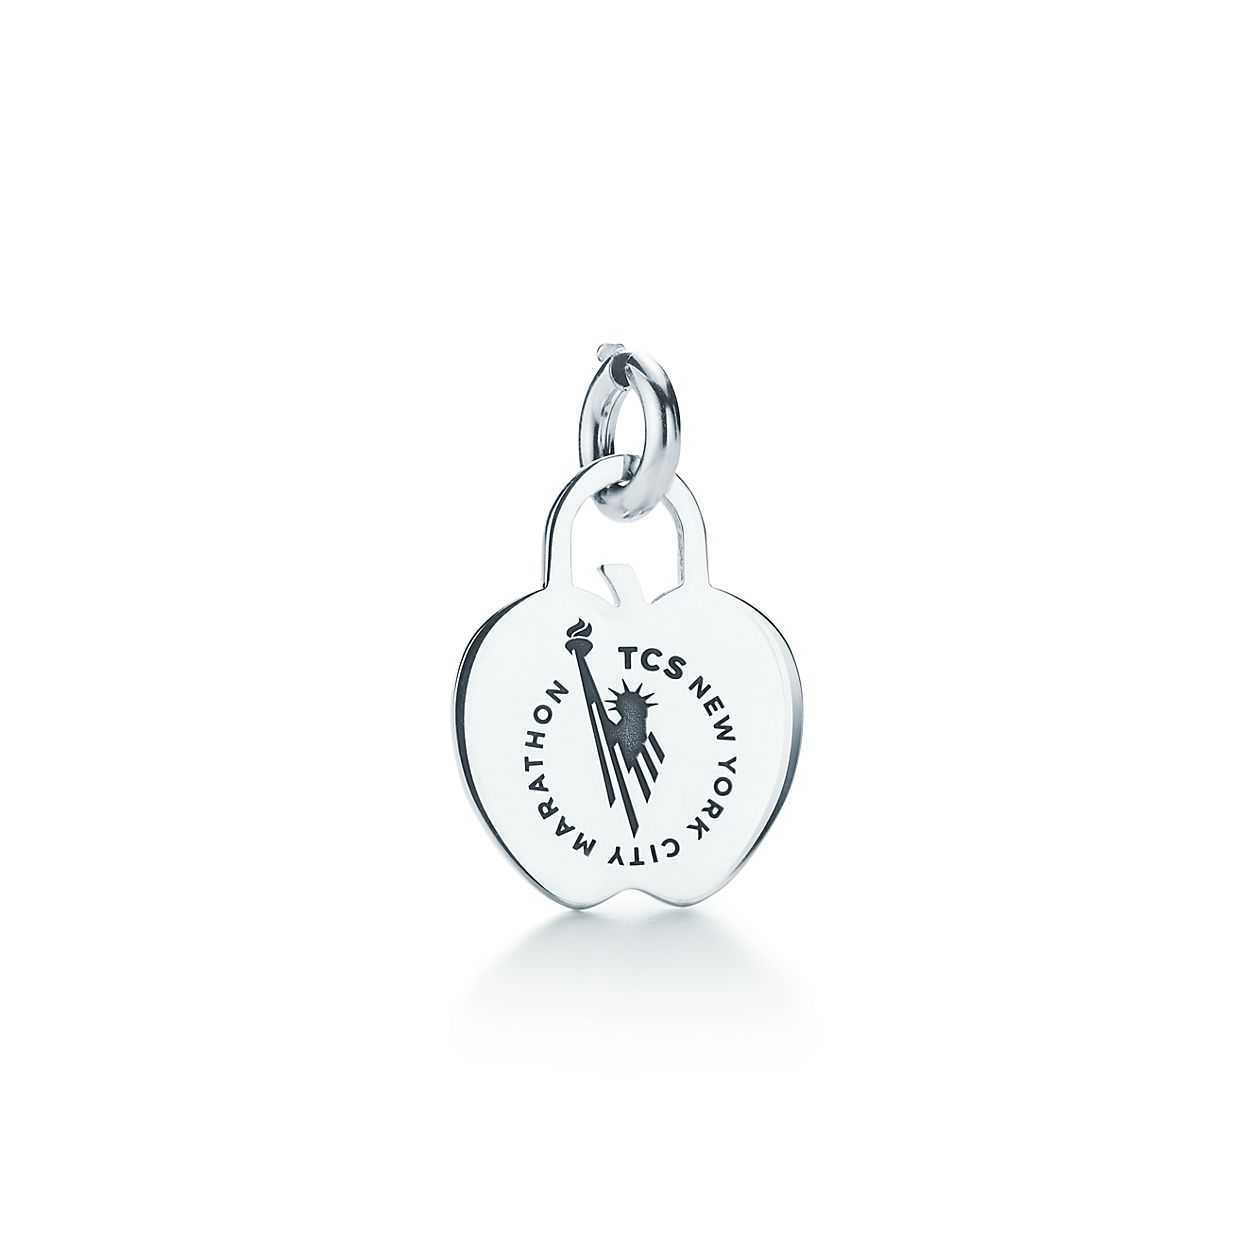 ... TCS New York City Marathon:Apple Charm